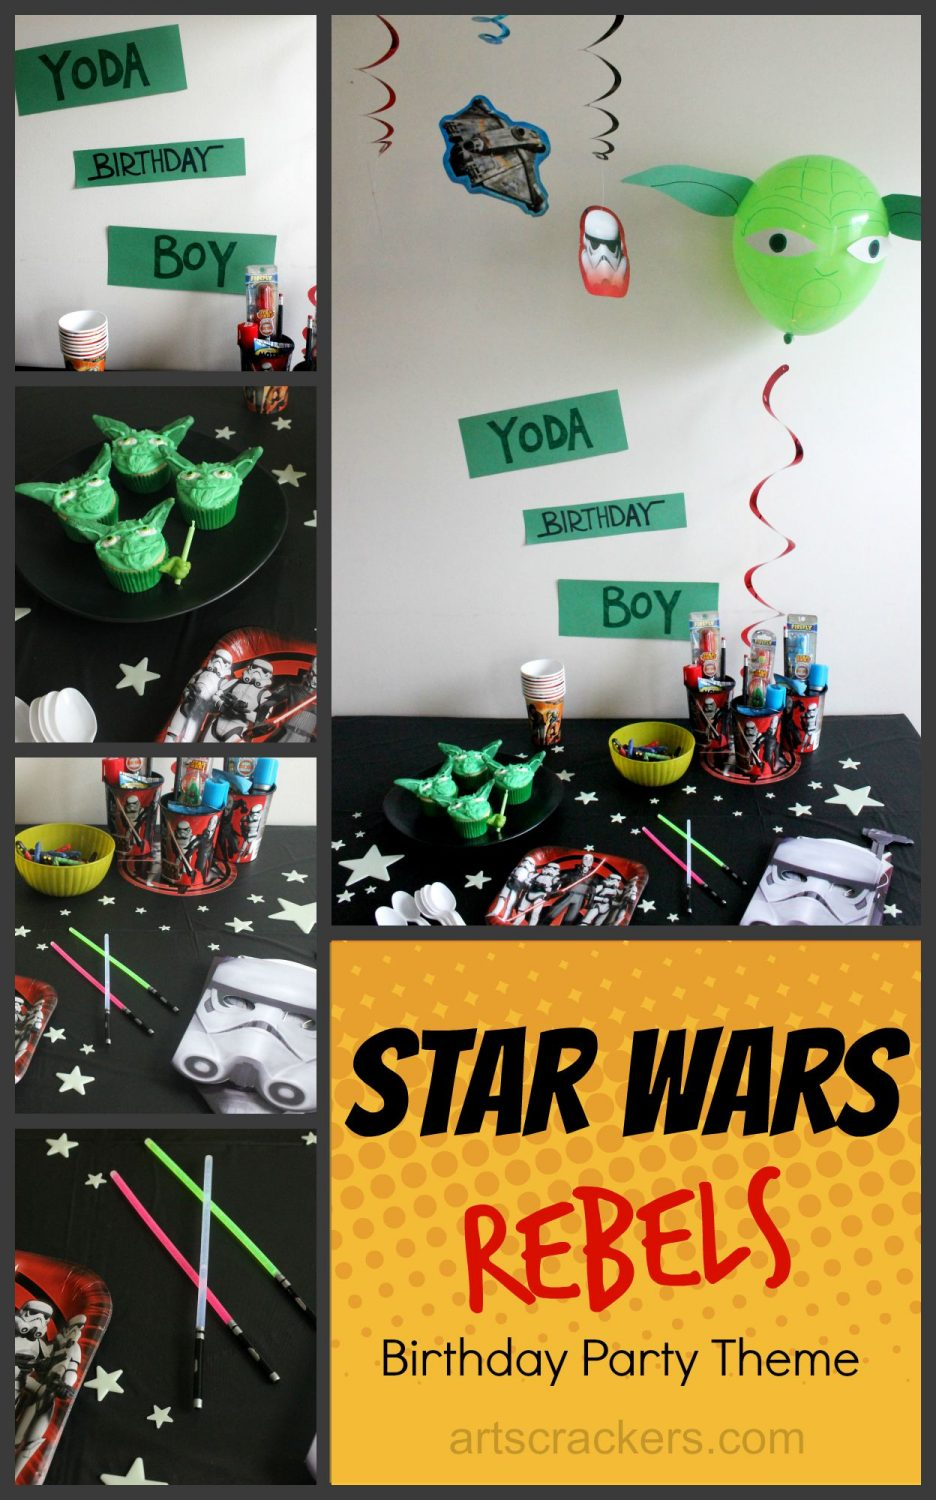 Star Wars Rebels Birthday Party Theme